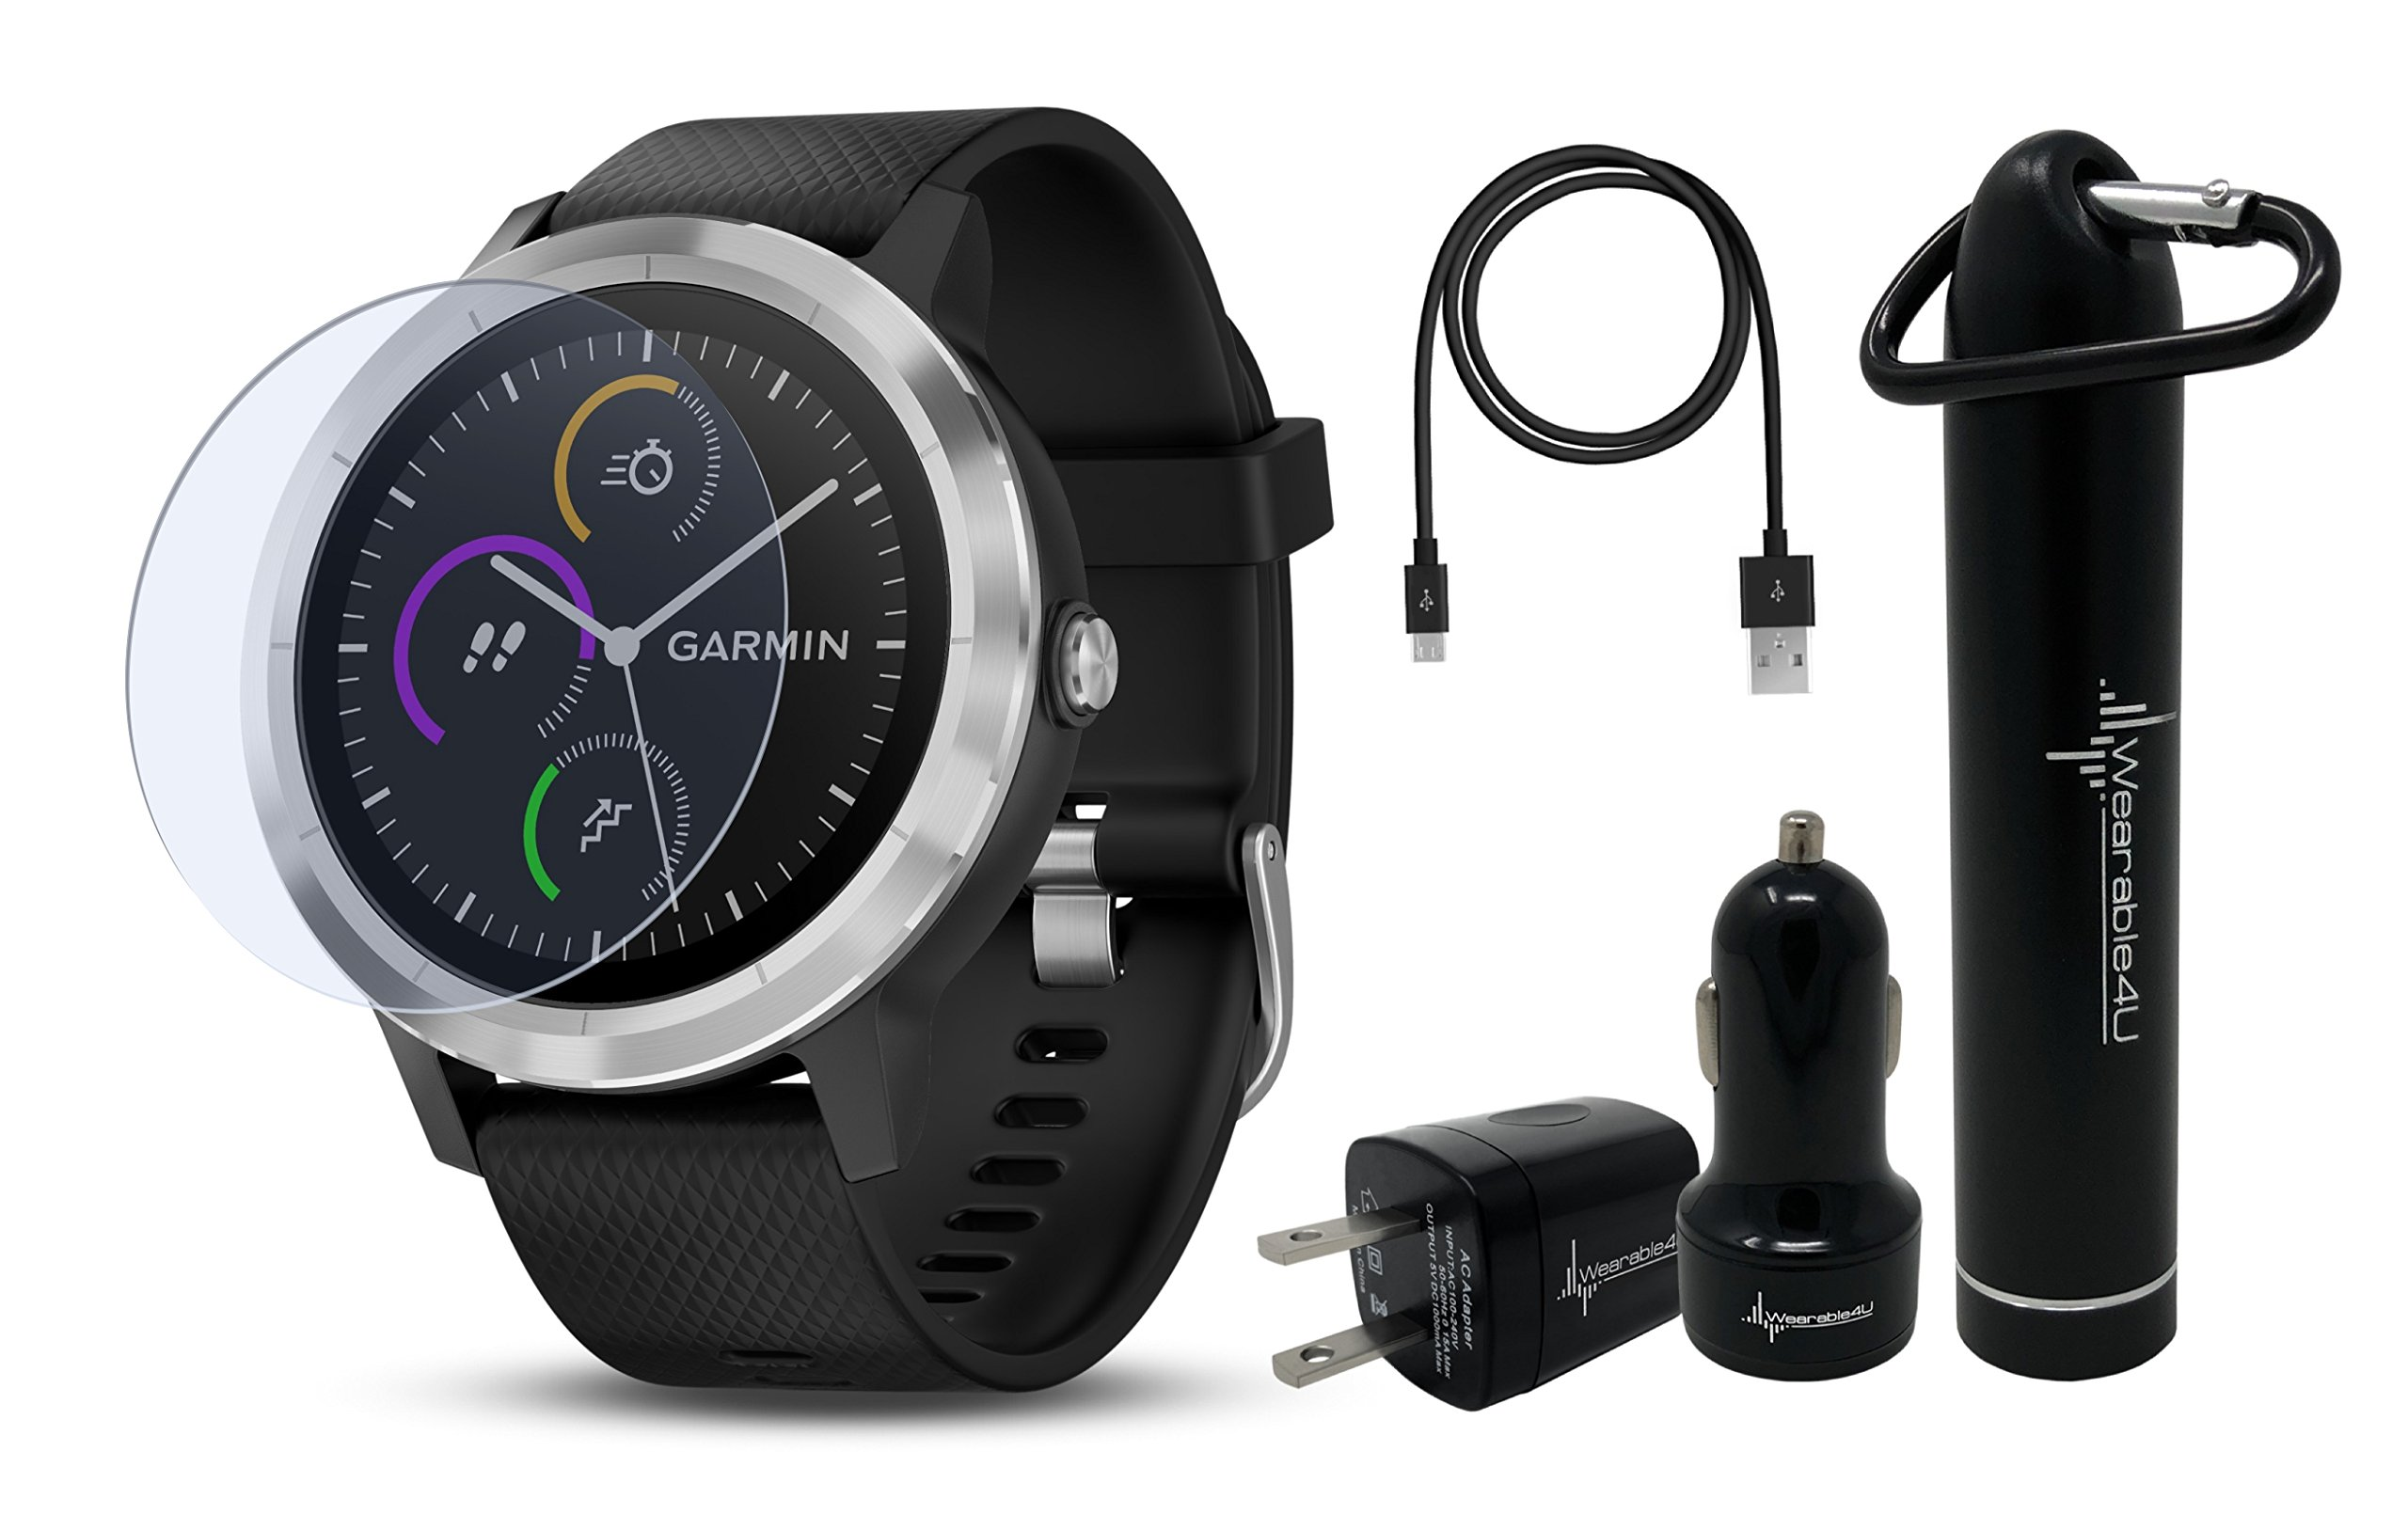 Garmin Vivoactive 3 GPS Smartwatch with Touchscreen Display and Contactless Payments Feature and Wrist-based Heart Rate and Wearable4U Ultimate Power Pack Bundle (Black/Stainless)